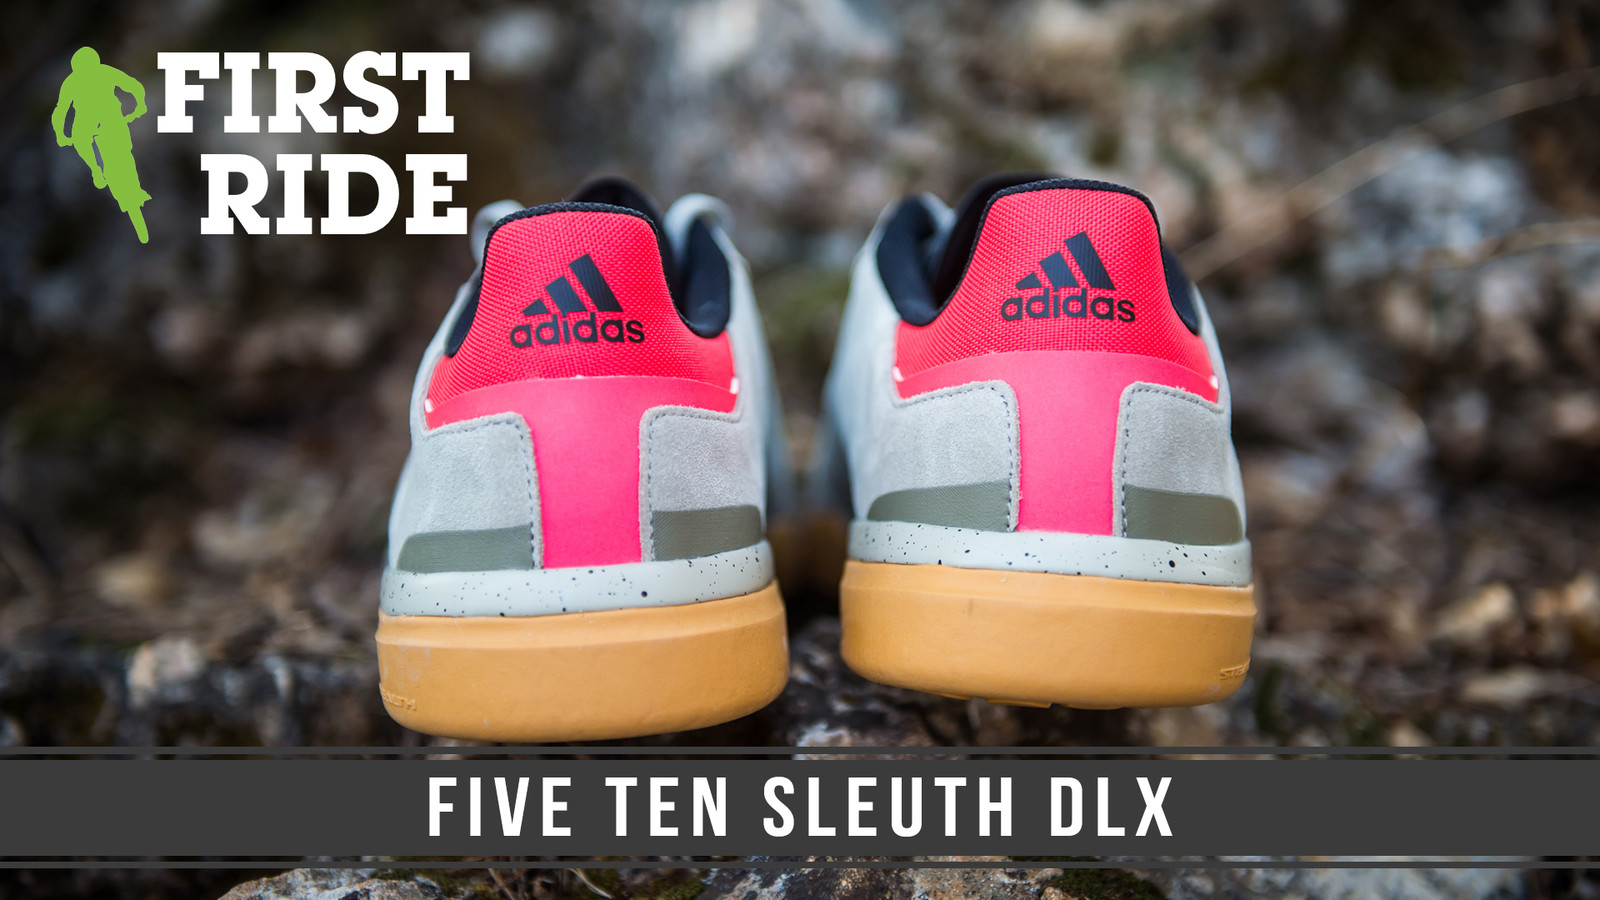 From the Pumptrack To the Trails: Adidas-Branded Sleuth DLX from Five Ten